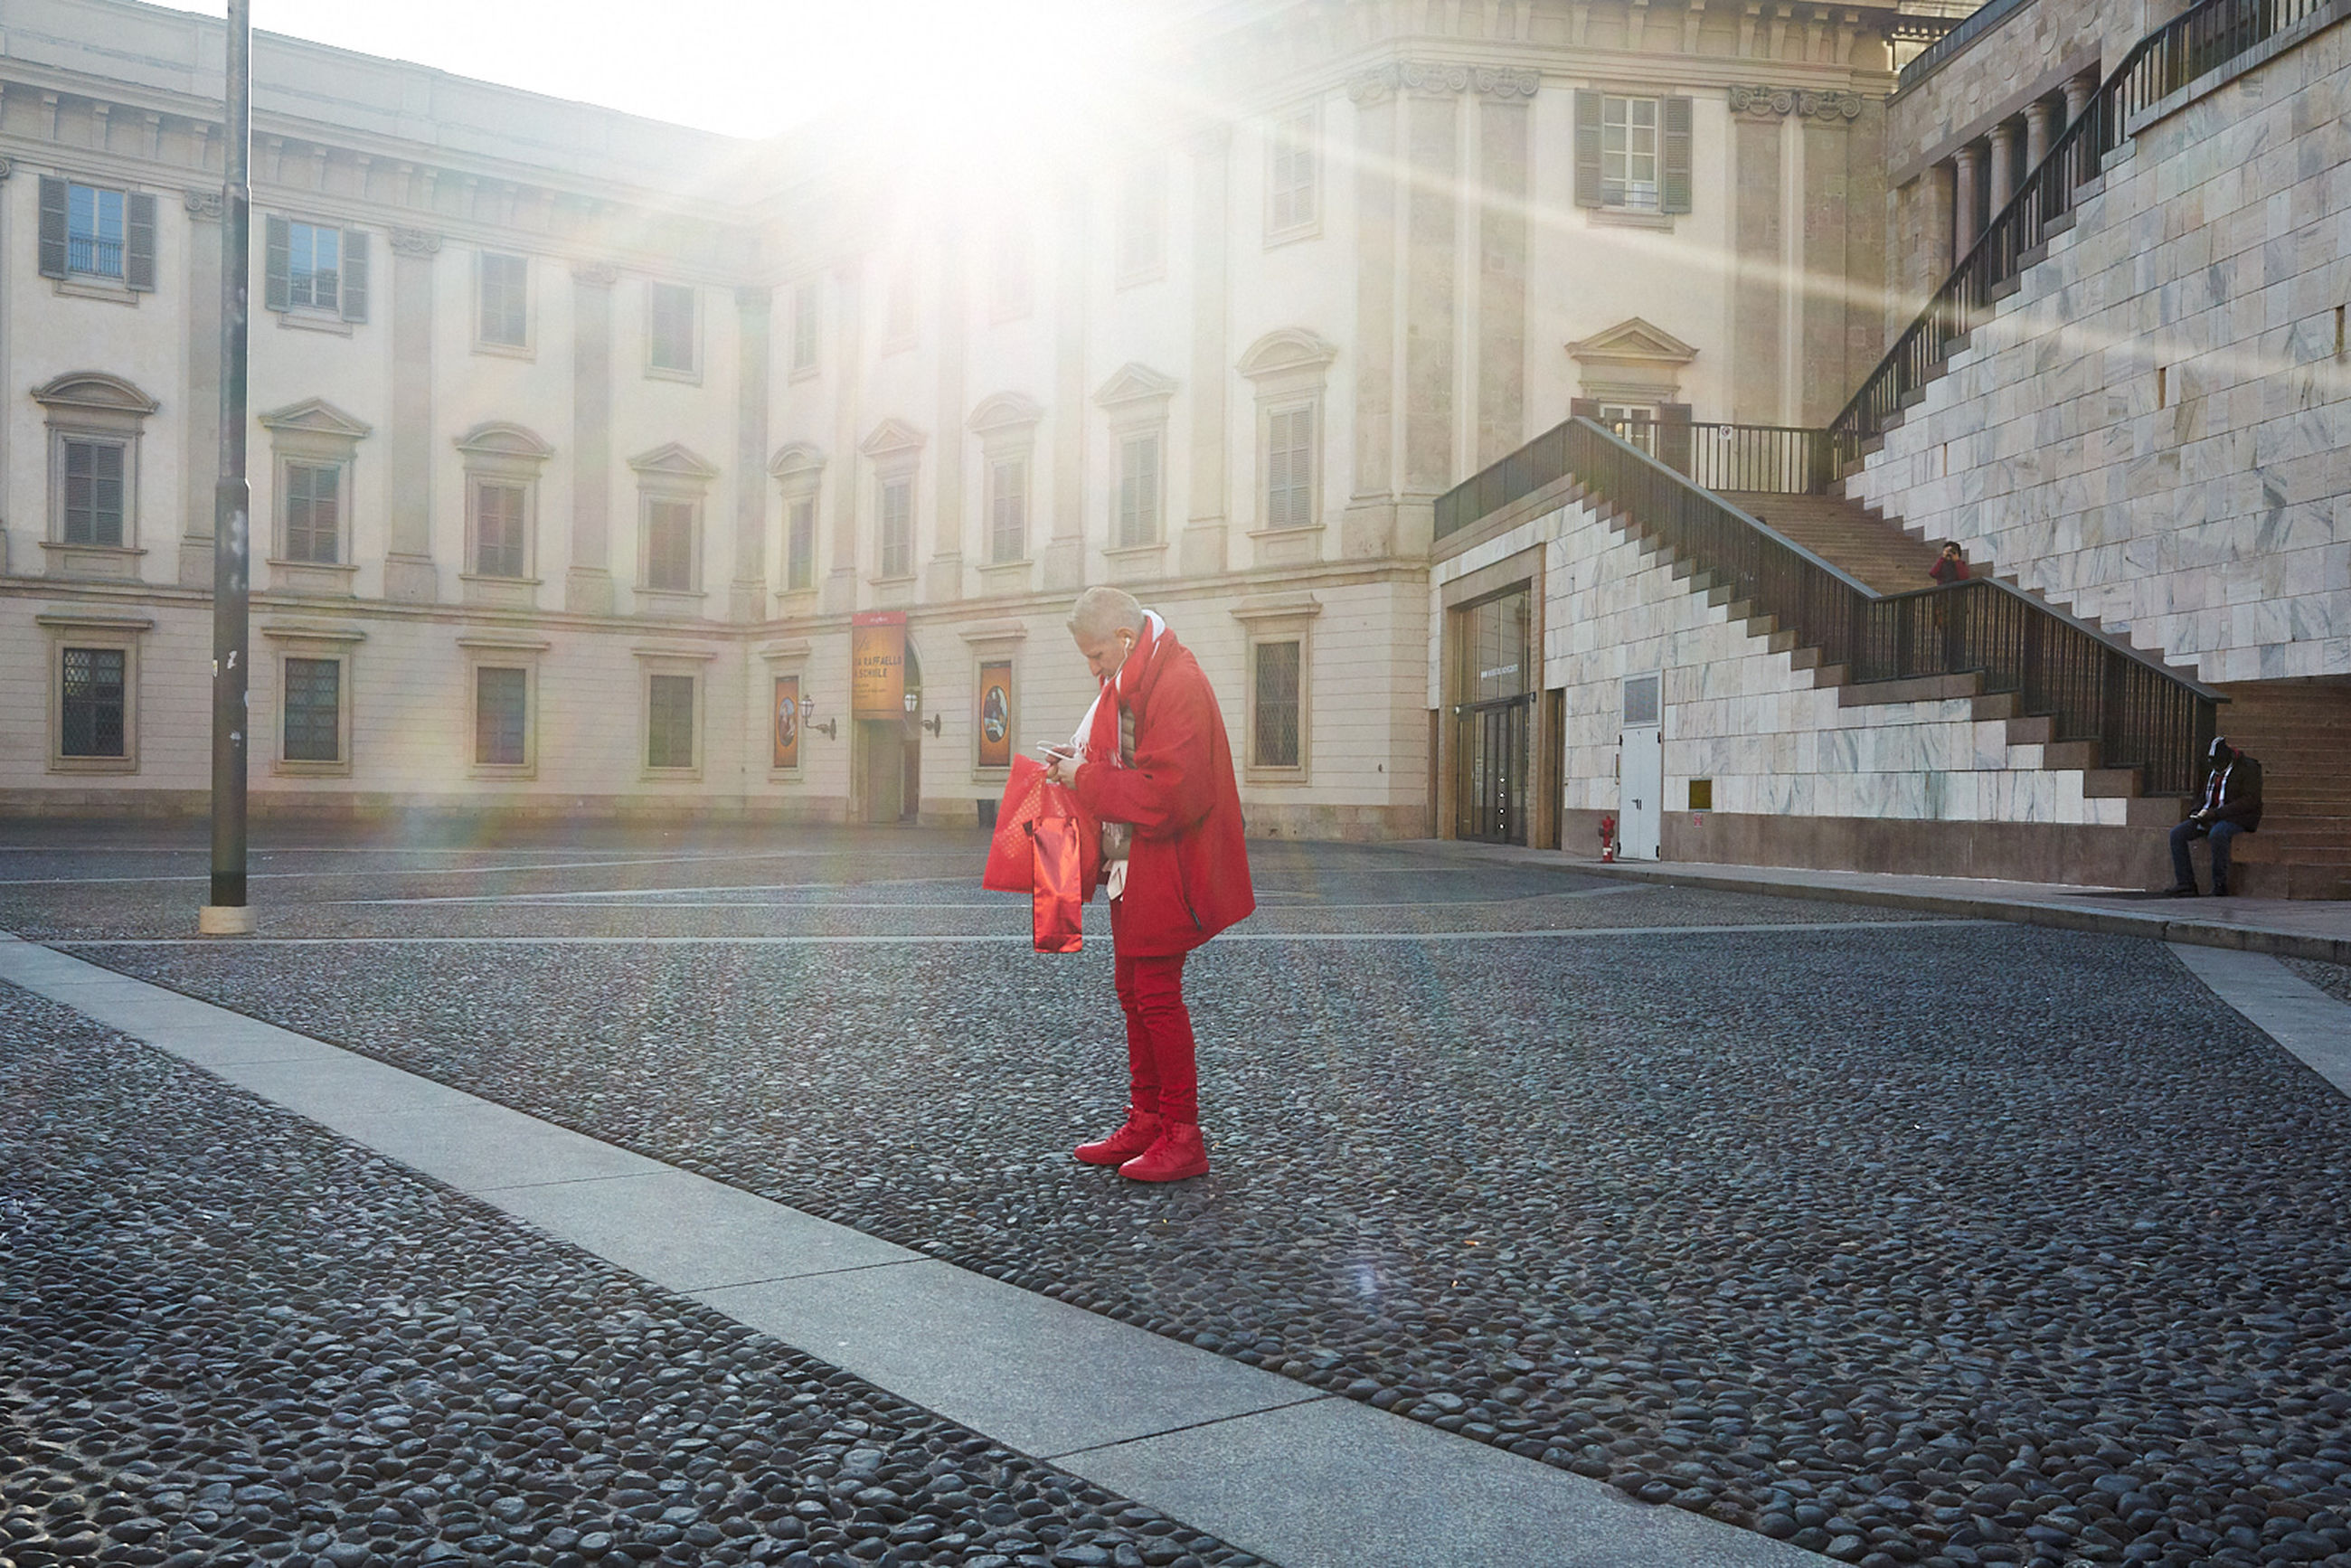 architecture, built structure, building exterior, one person, full length, city, street, real people, red, women, day, lifestyles, warm clothing, coat, walking, lens flare, footpath, leisure activity, sunlight, outdoors